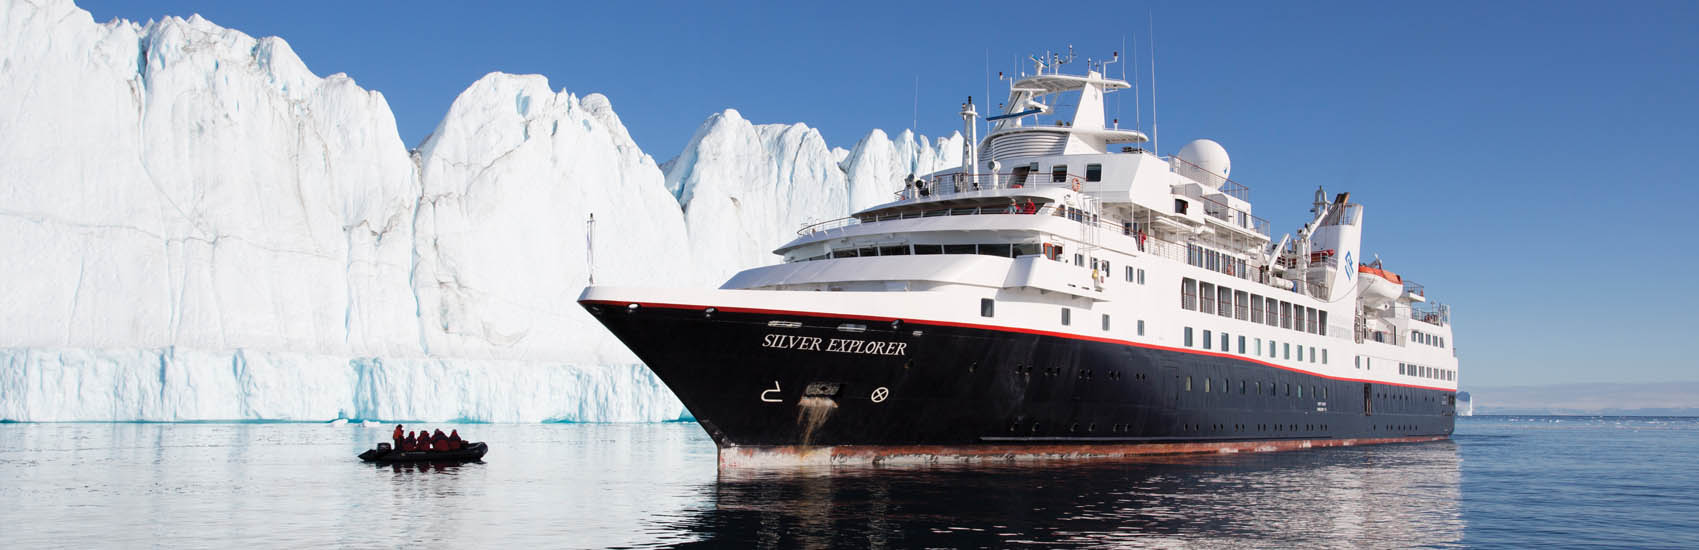 Explore the Arctic with Silversea! 2